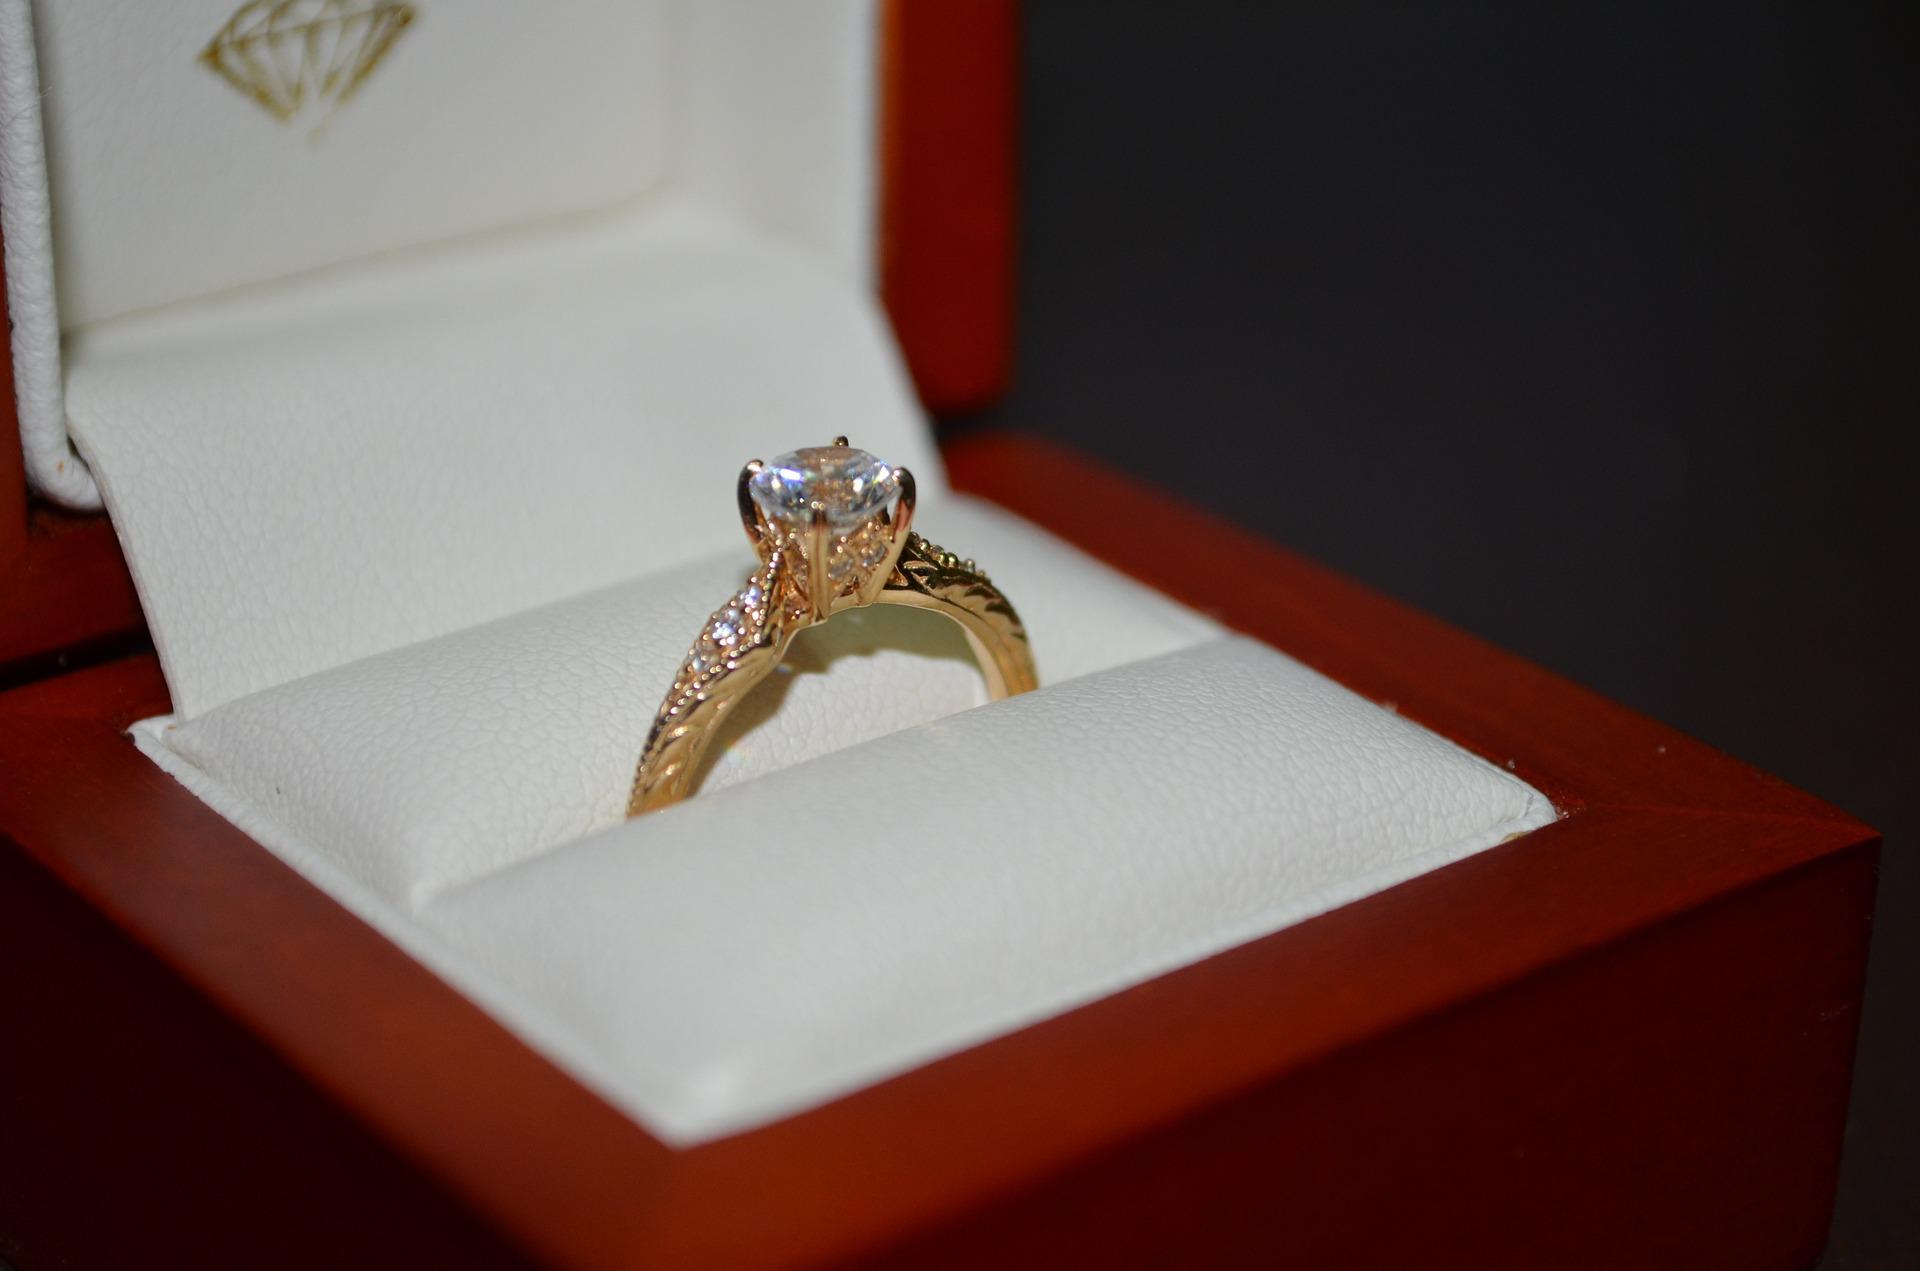 Woman swallows engagement ring while asleep, needs surgery to have it removed